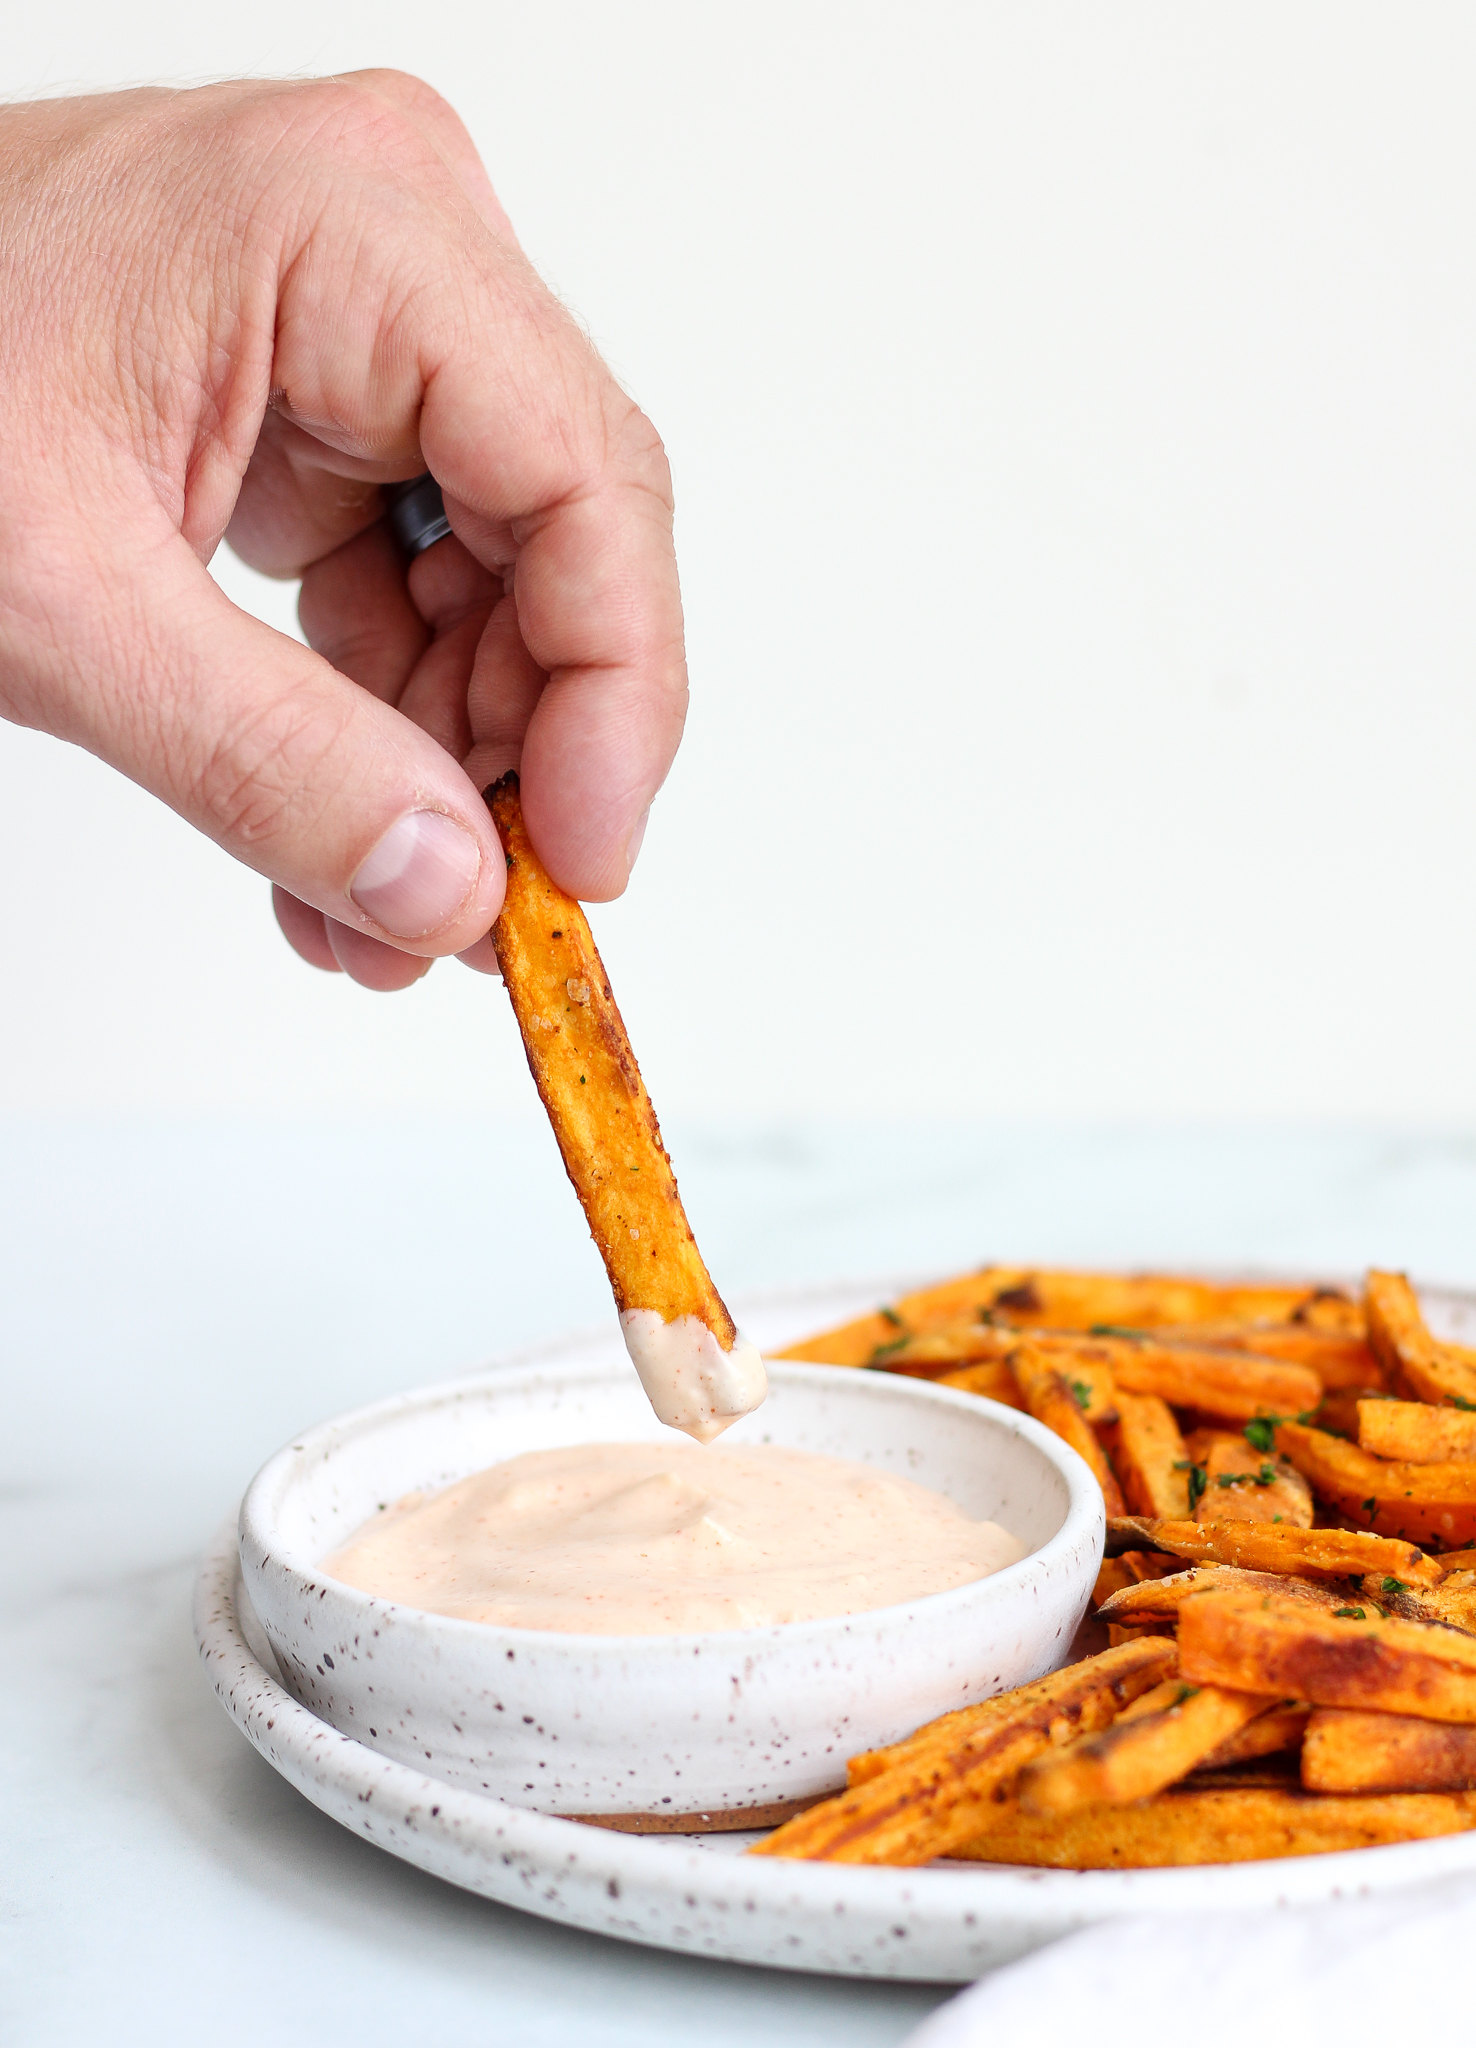 hand dipping an oven baked sweet potato fry into a spicy garlic aioli